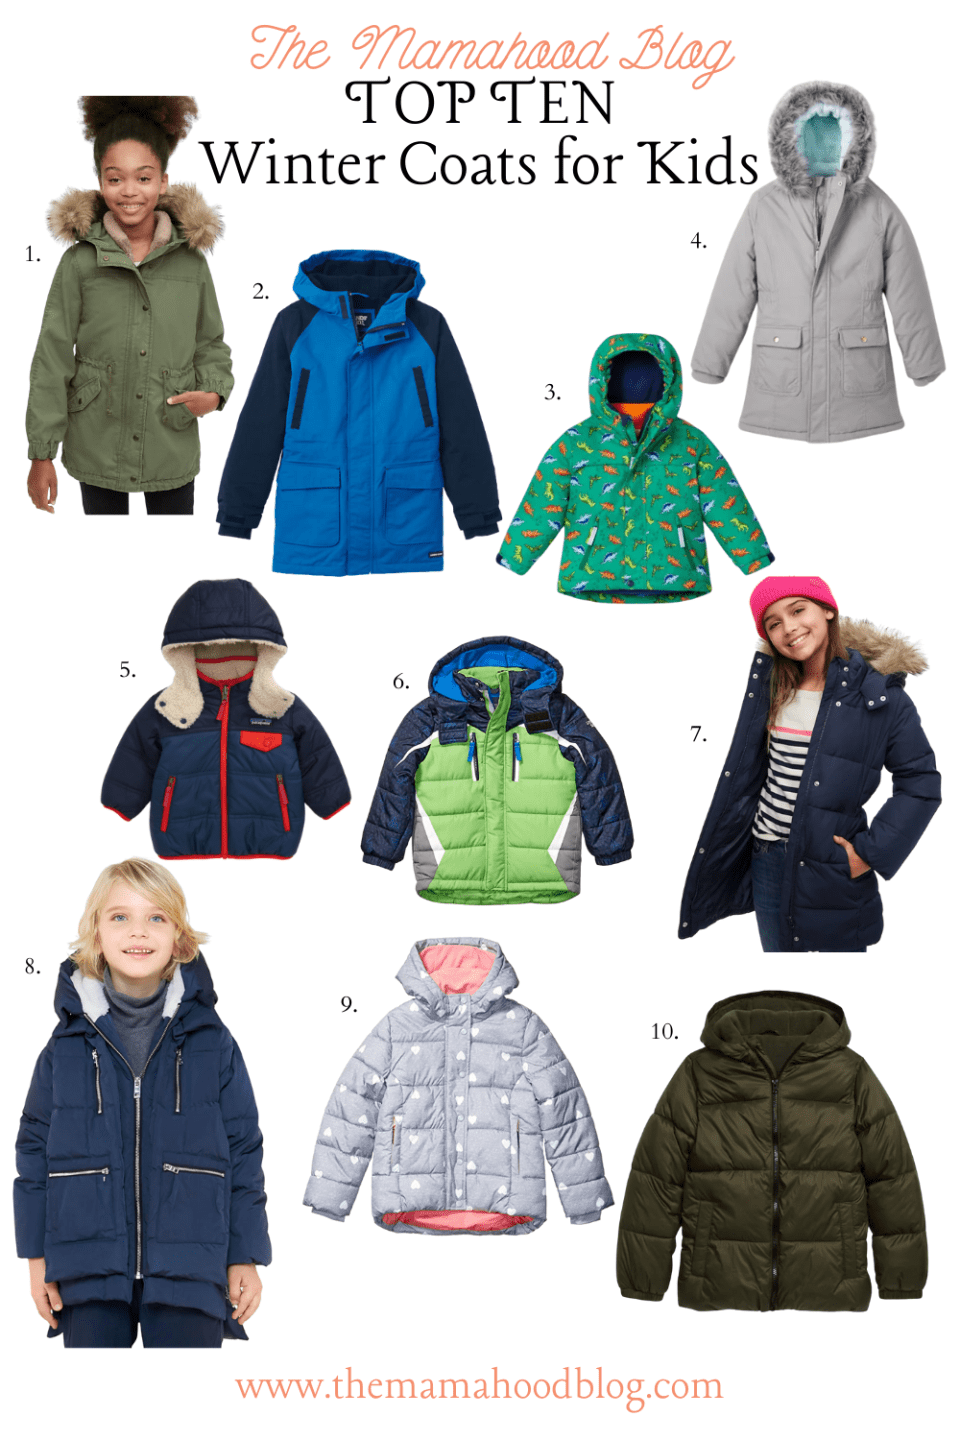 The Mamahood Blog's Top Ten Snow and Winter Gear Picks for Kids www.themamahoodblog.com